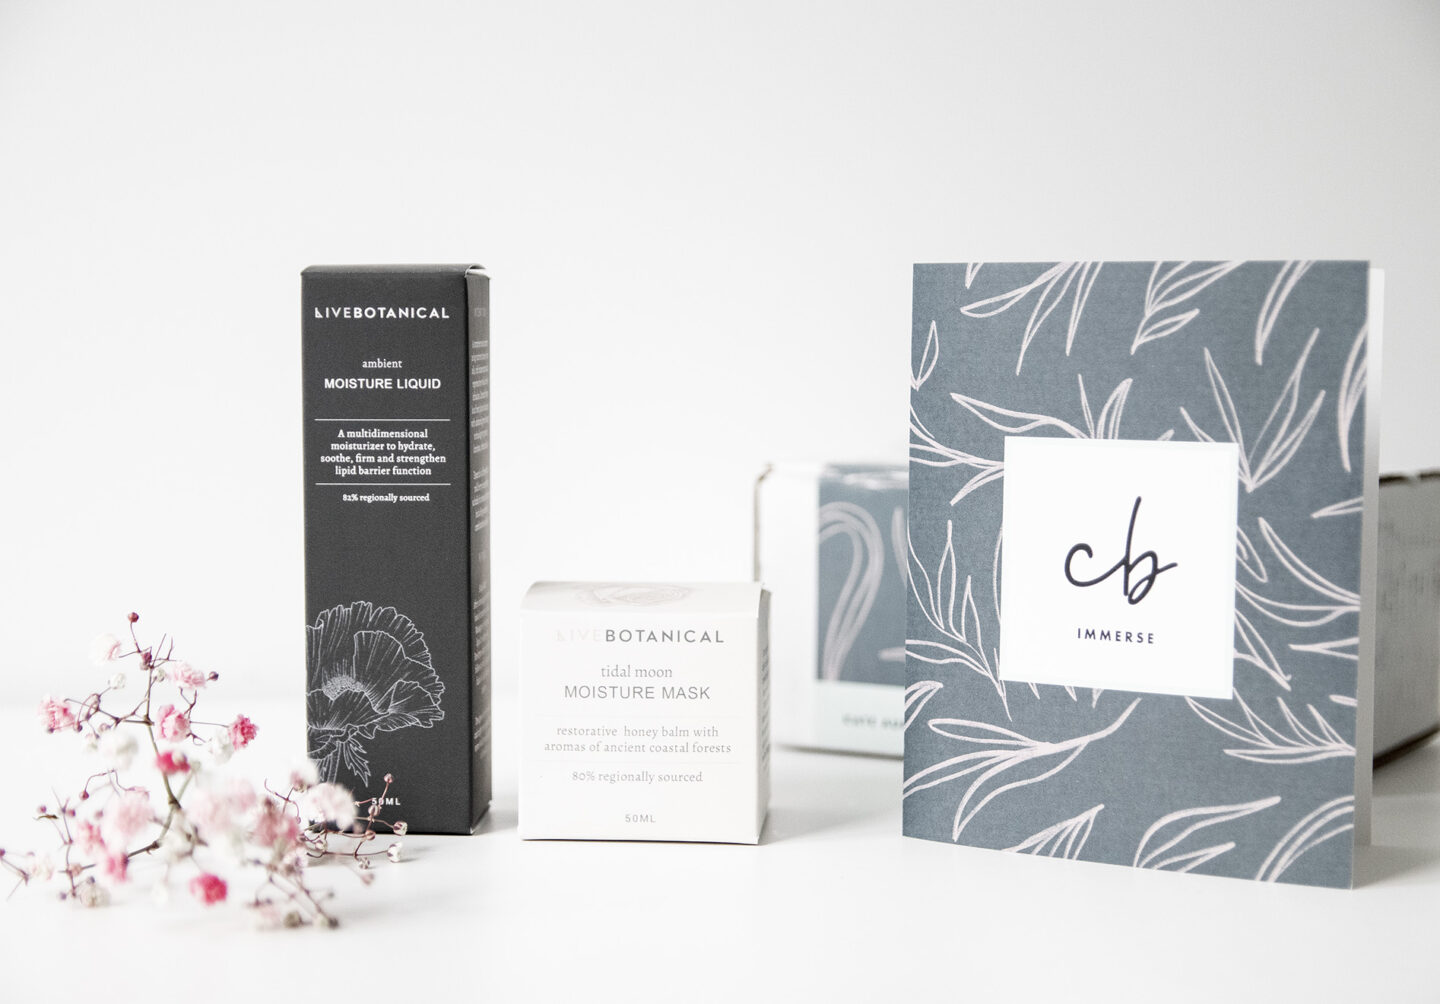 Clean Beauty Box Immerse 2021